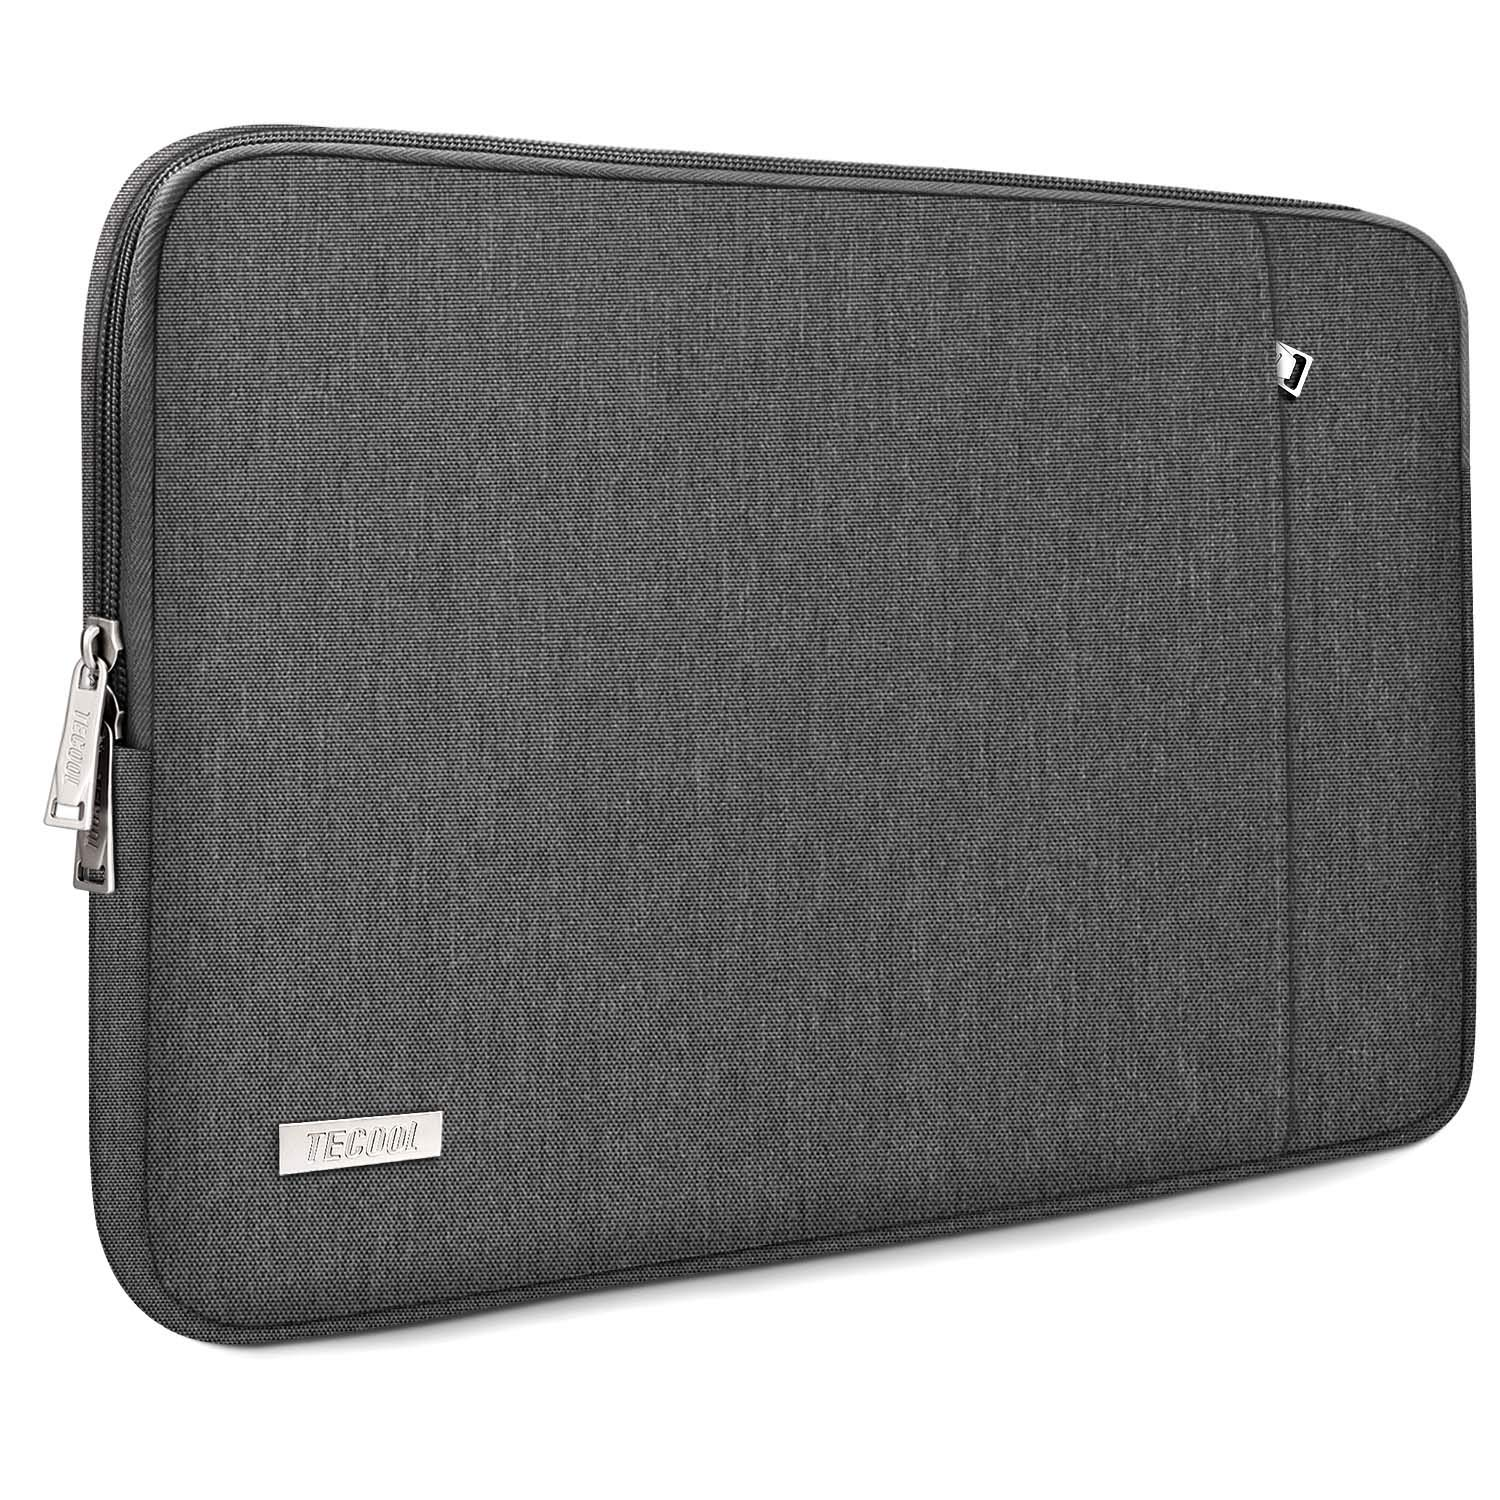 """TECOOL 13.3-13.5 Inch Laptop Sleeve Protective Case Cover with Front Pocket for 13.5"""" Surface Laptop 3/2, MacBook Air/Pro 13, 13.3""""-14"""" Ultrabook Chromebook Computer Bag Water Repellent, Dark Gray"""